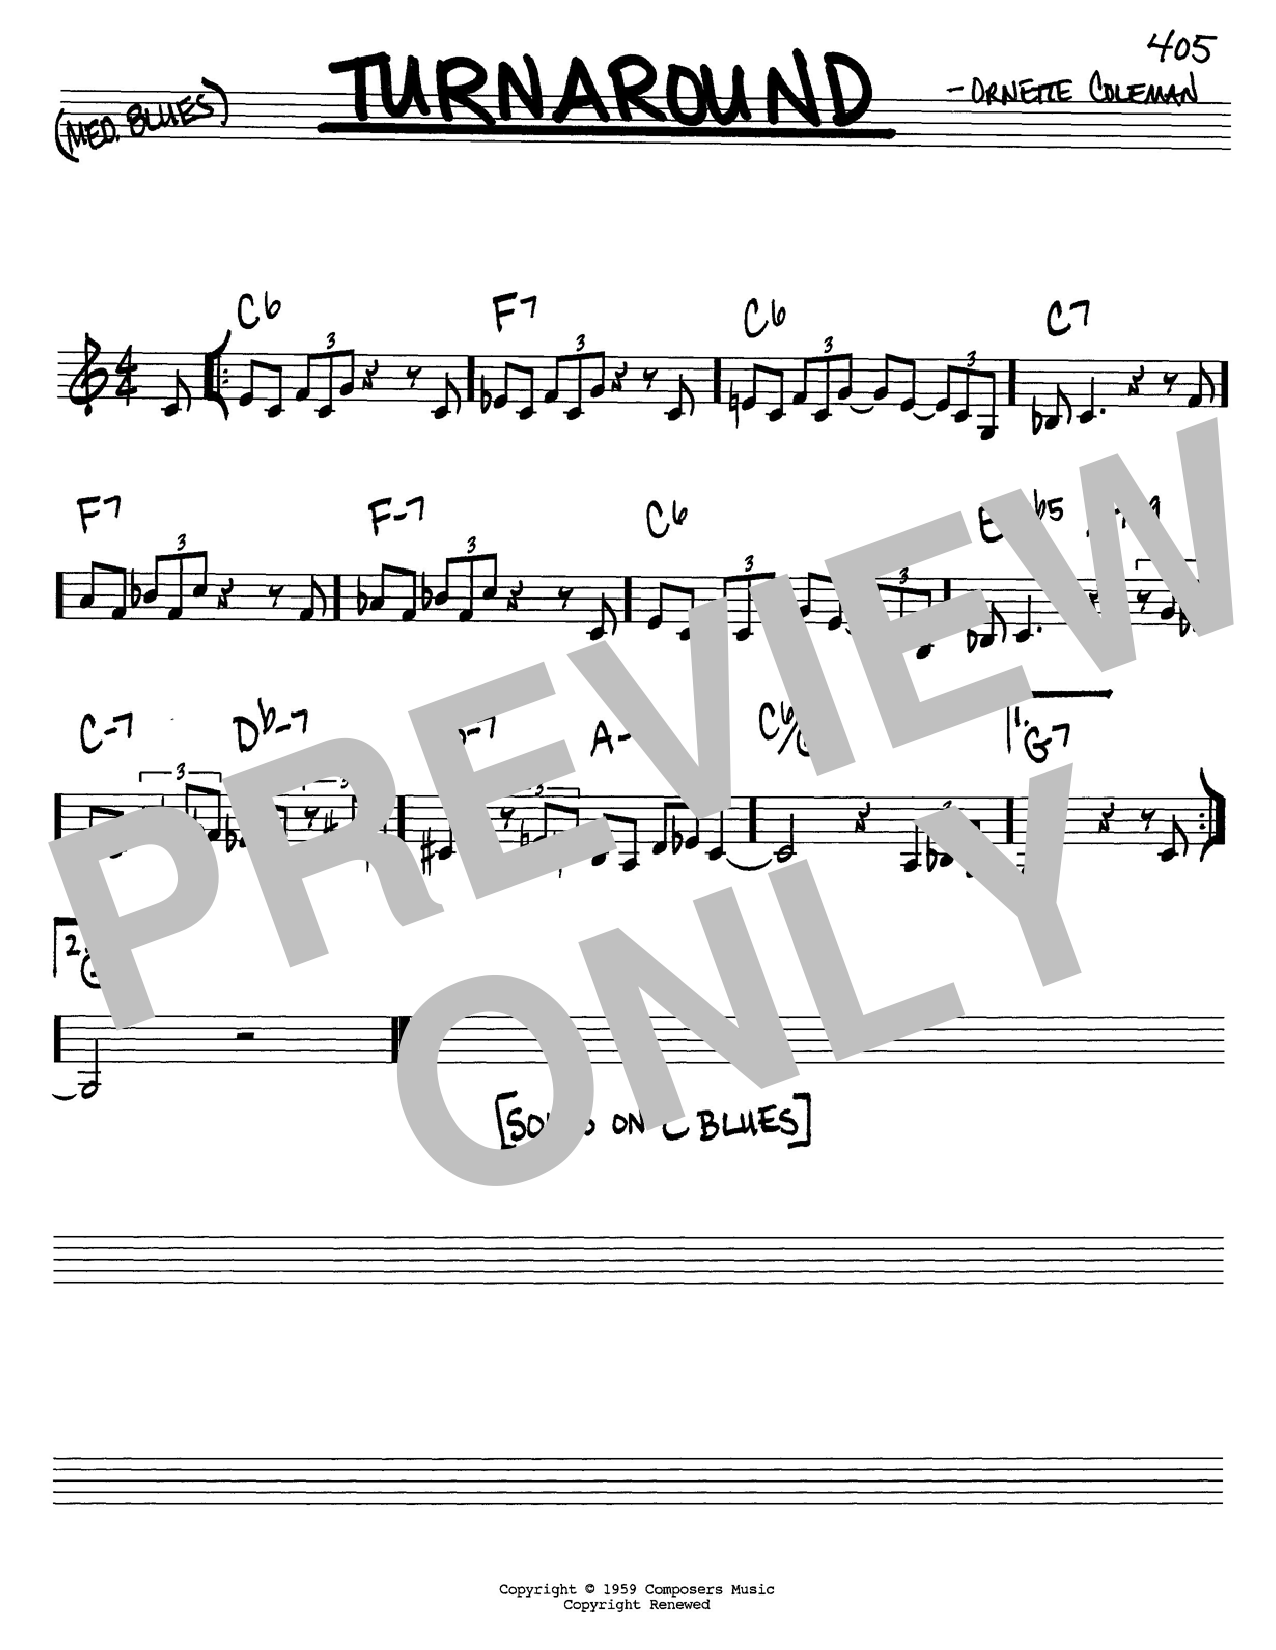 Ornette Coleman Turnaround sheet music notes and chords. Download Printable PDF.